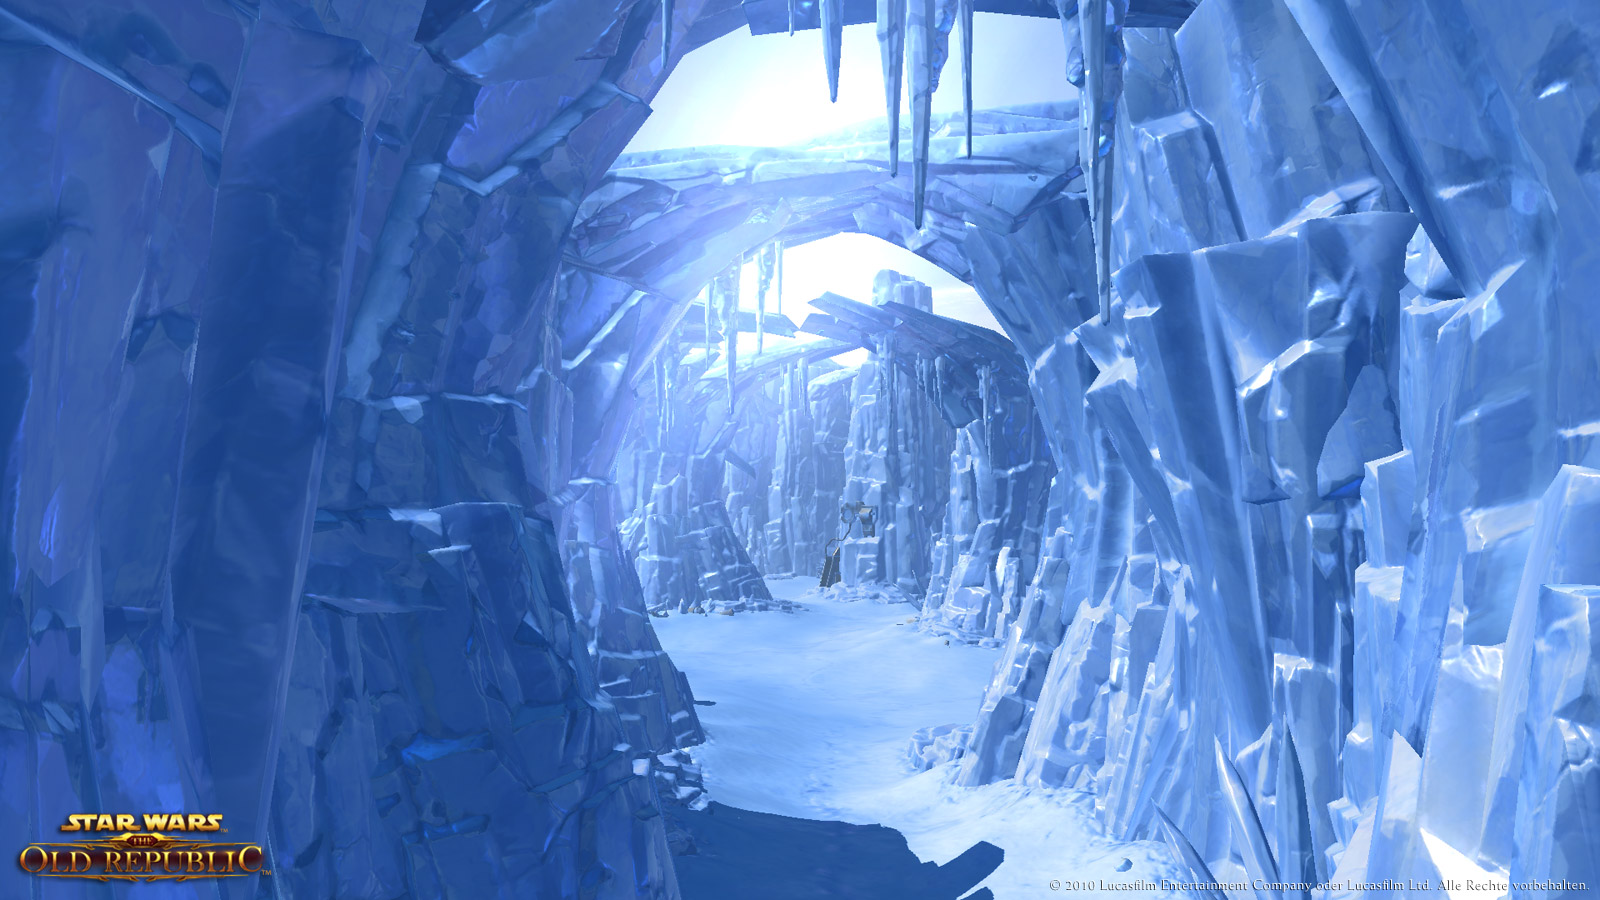 http://cdn-www.swtor.com//sites/all/files/de/planets/hoth/ss732/SS_20100521_Hoth04_full.jpg